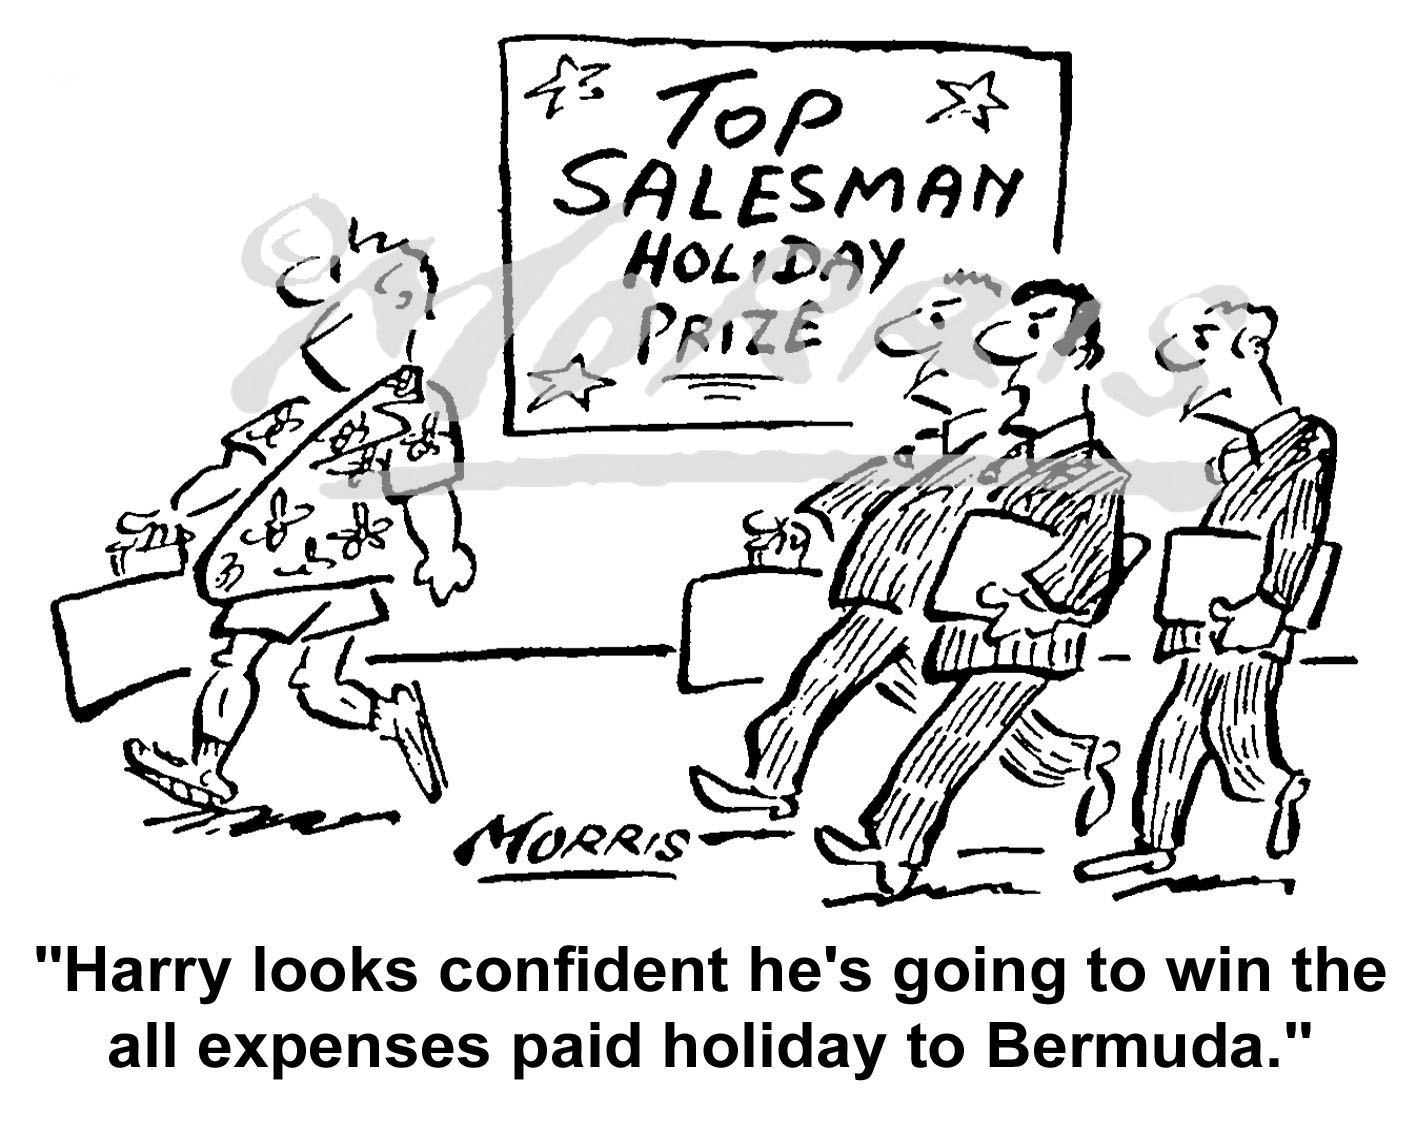 Top salesman holiday competition – Ref: 5347bw